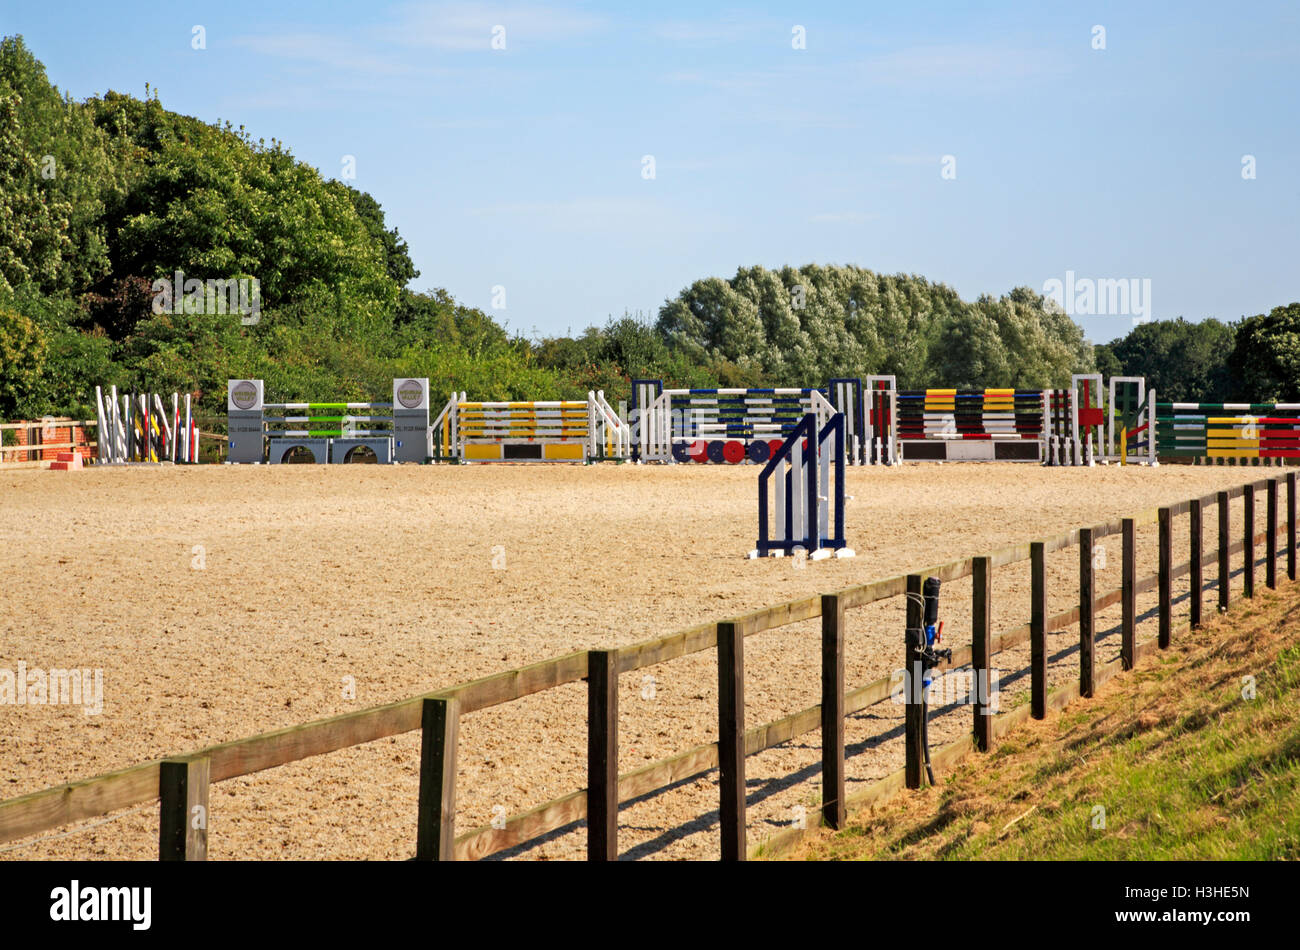 An arena with stored fences and poles for equestrian eventing at Brampton, Norfolk, England, United Kingdom. - Stock Image